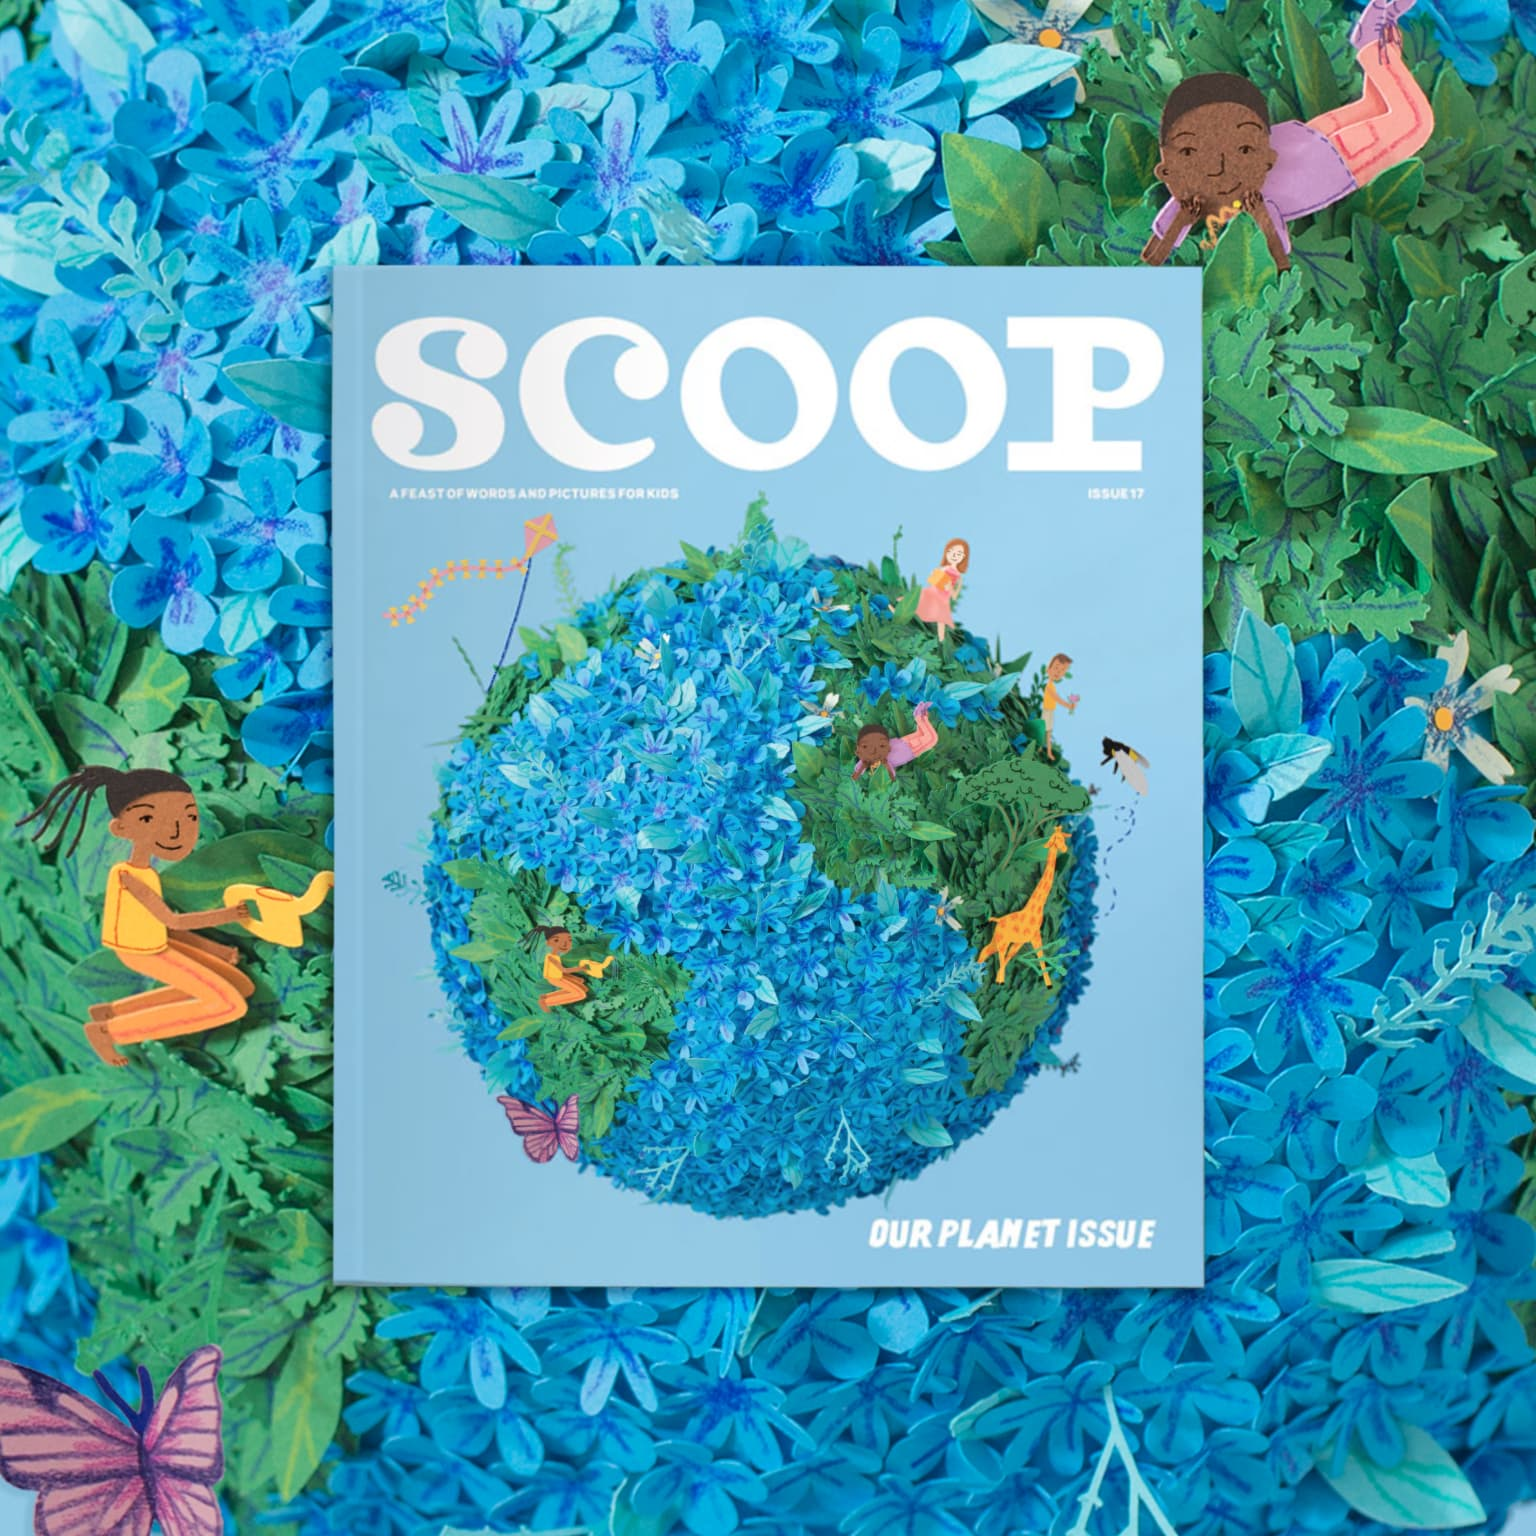 Scoop Magazine 'Our Planet' Cover